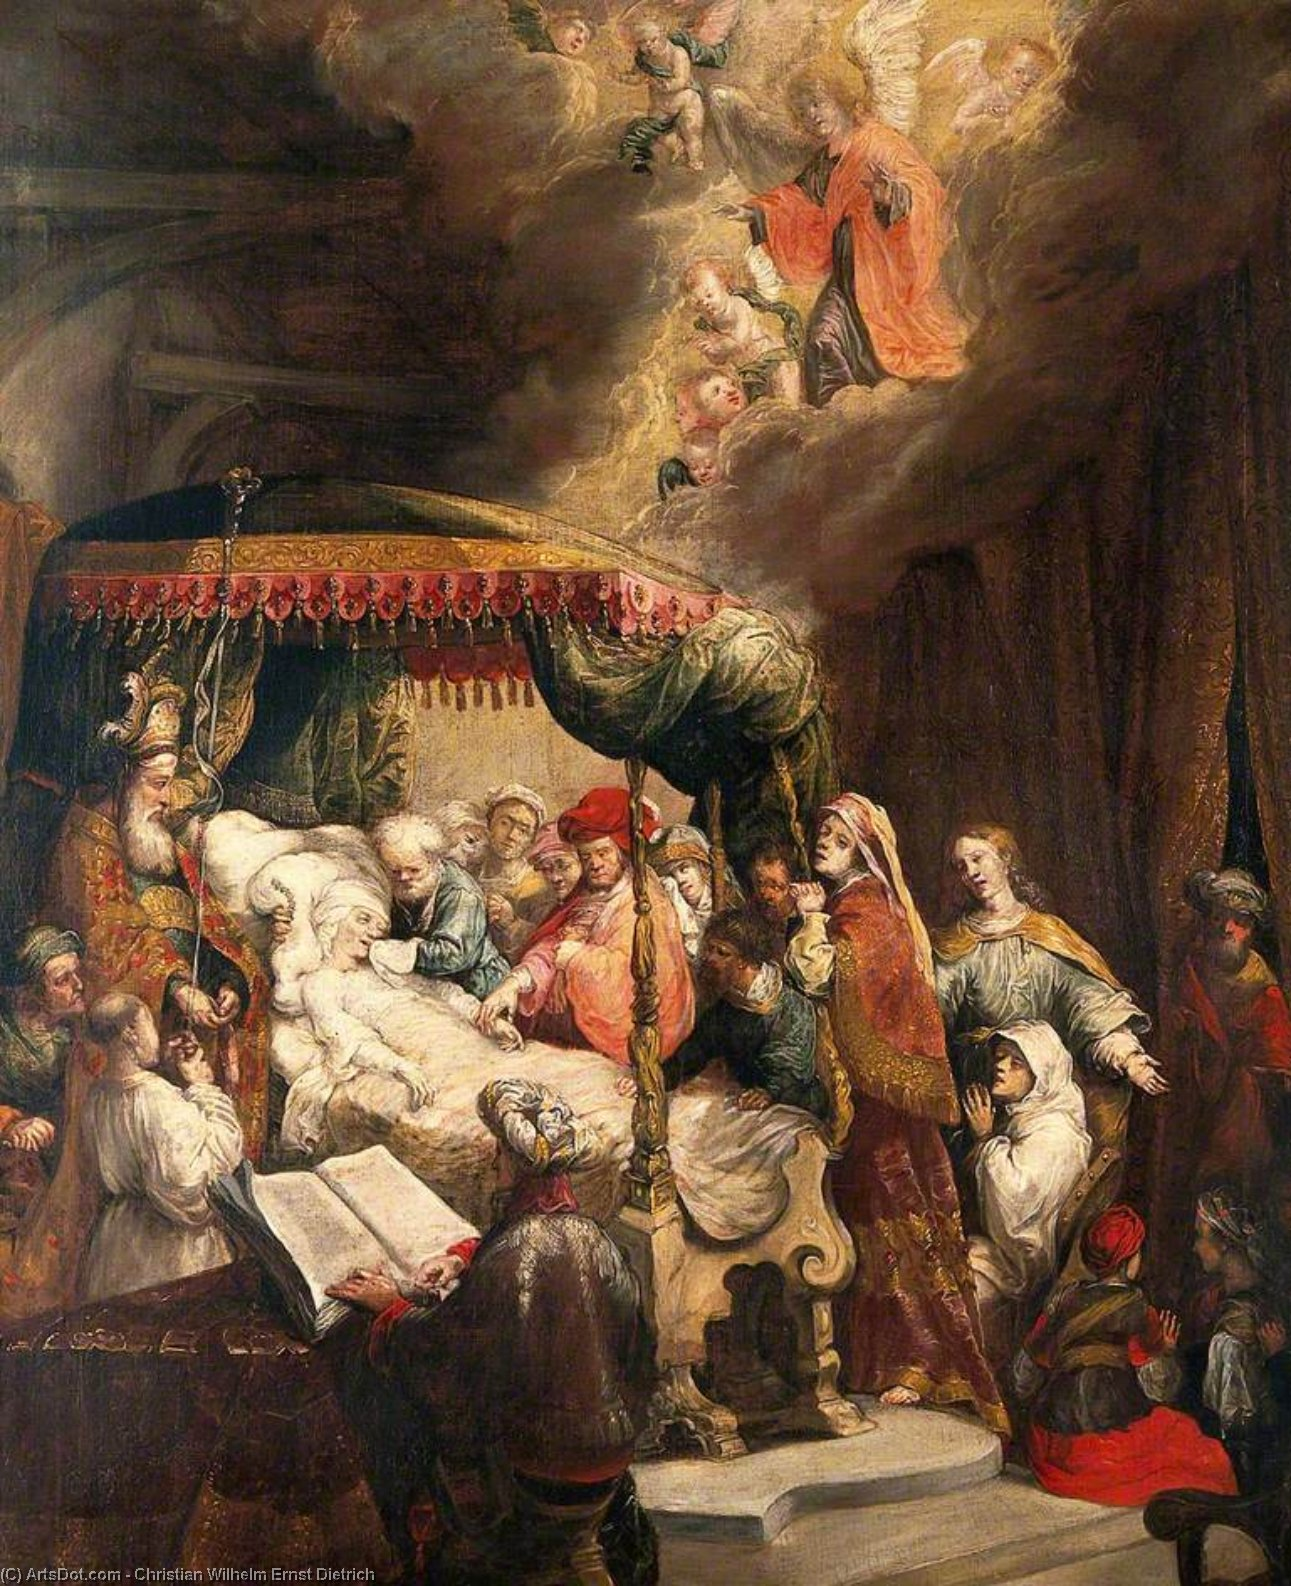 Order Art Reproductions | The Dormition of the Virgin by Christian Wilhelm Ernst Dietrich Dietrich (1712-1774) | ArtsDot.com